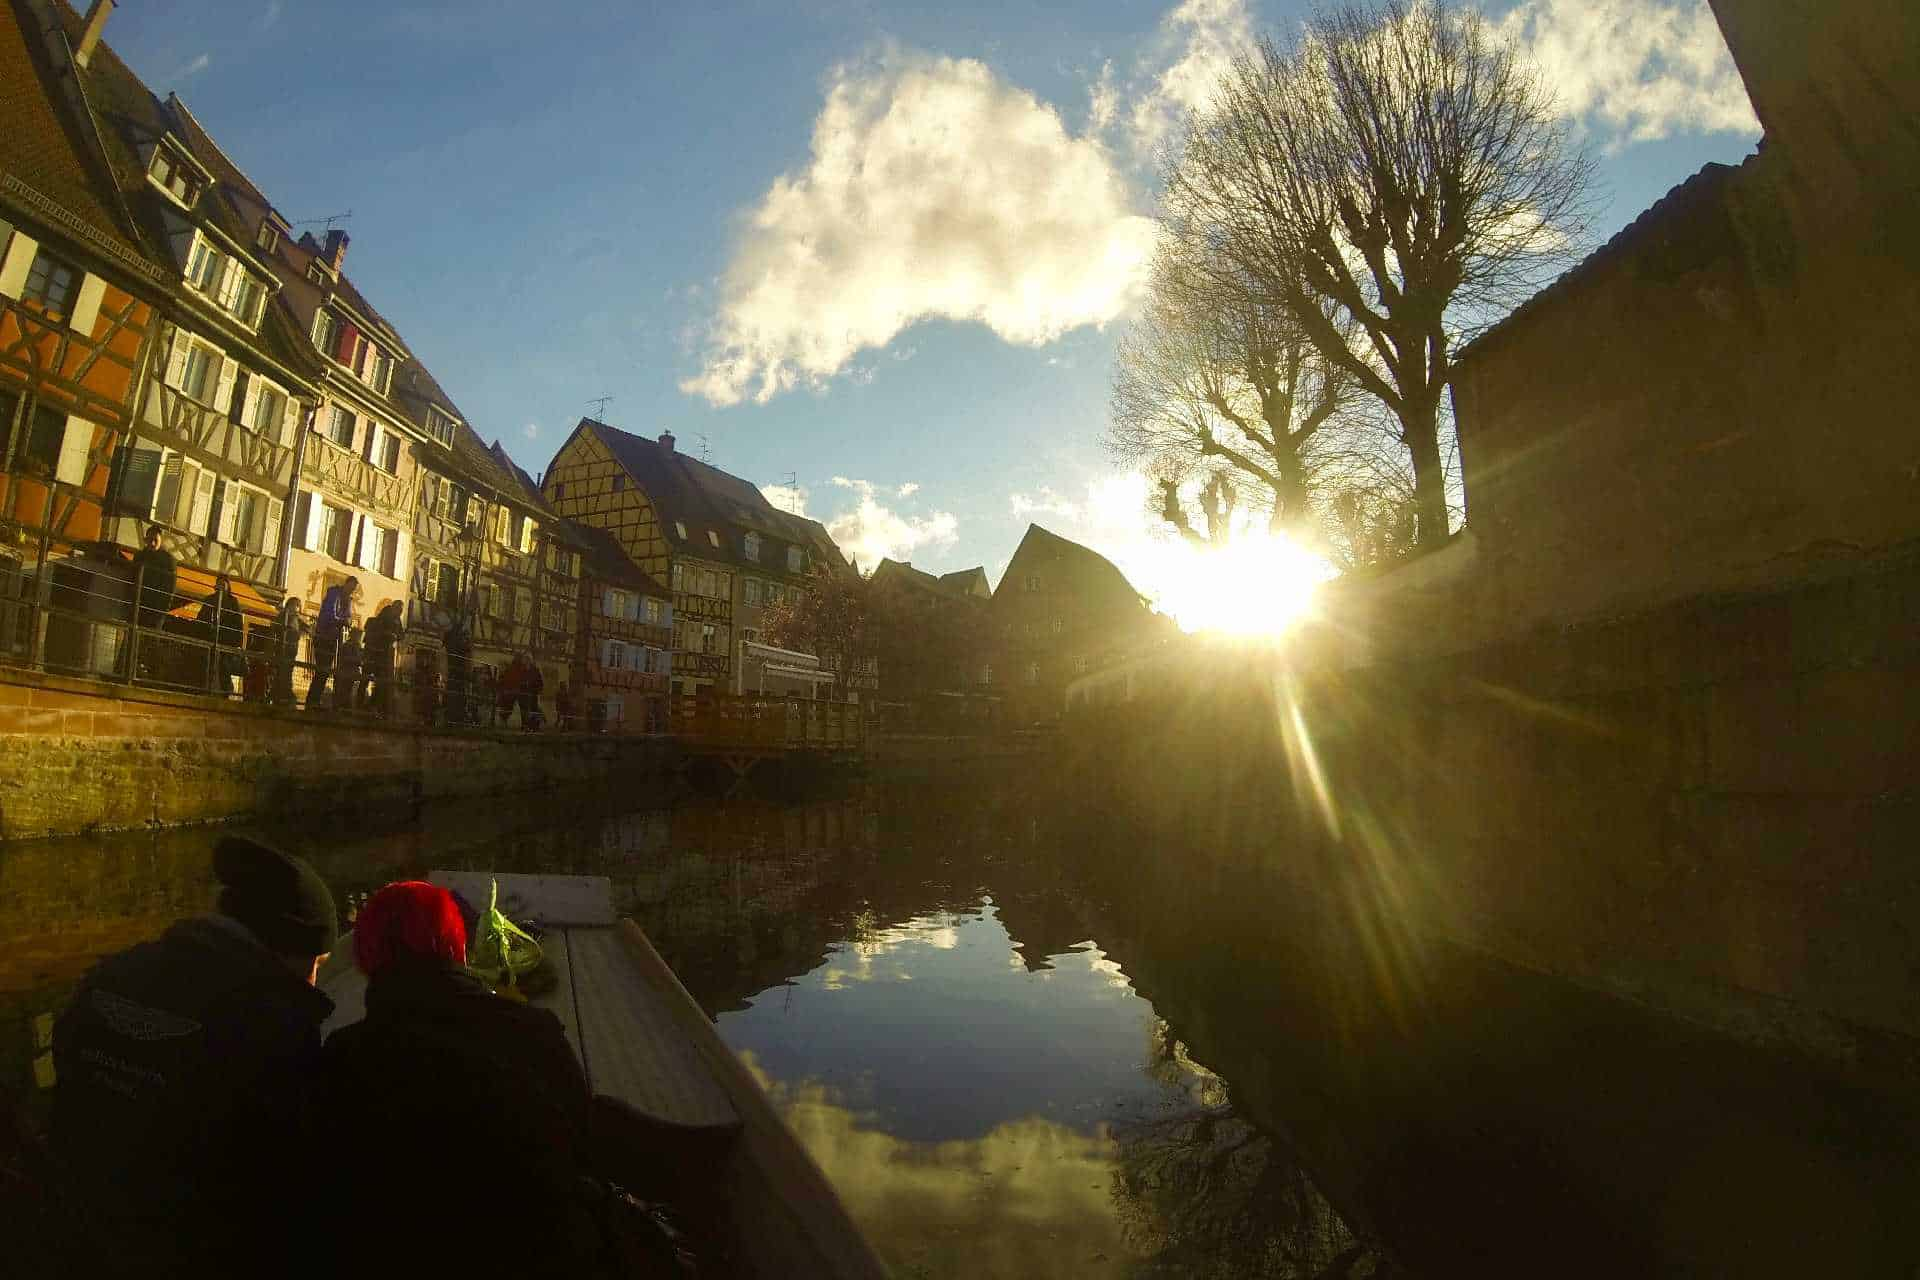 Sunset view of petite venise on canal cruise